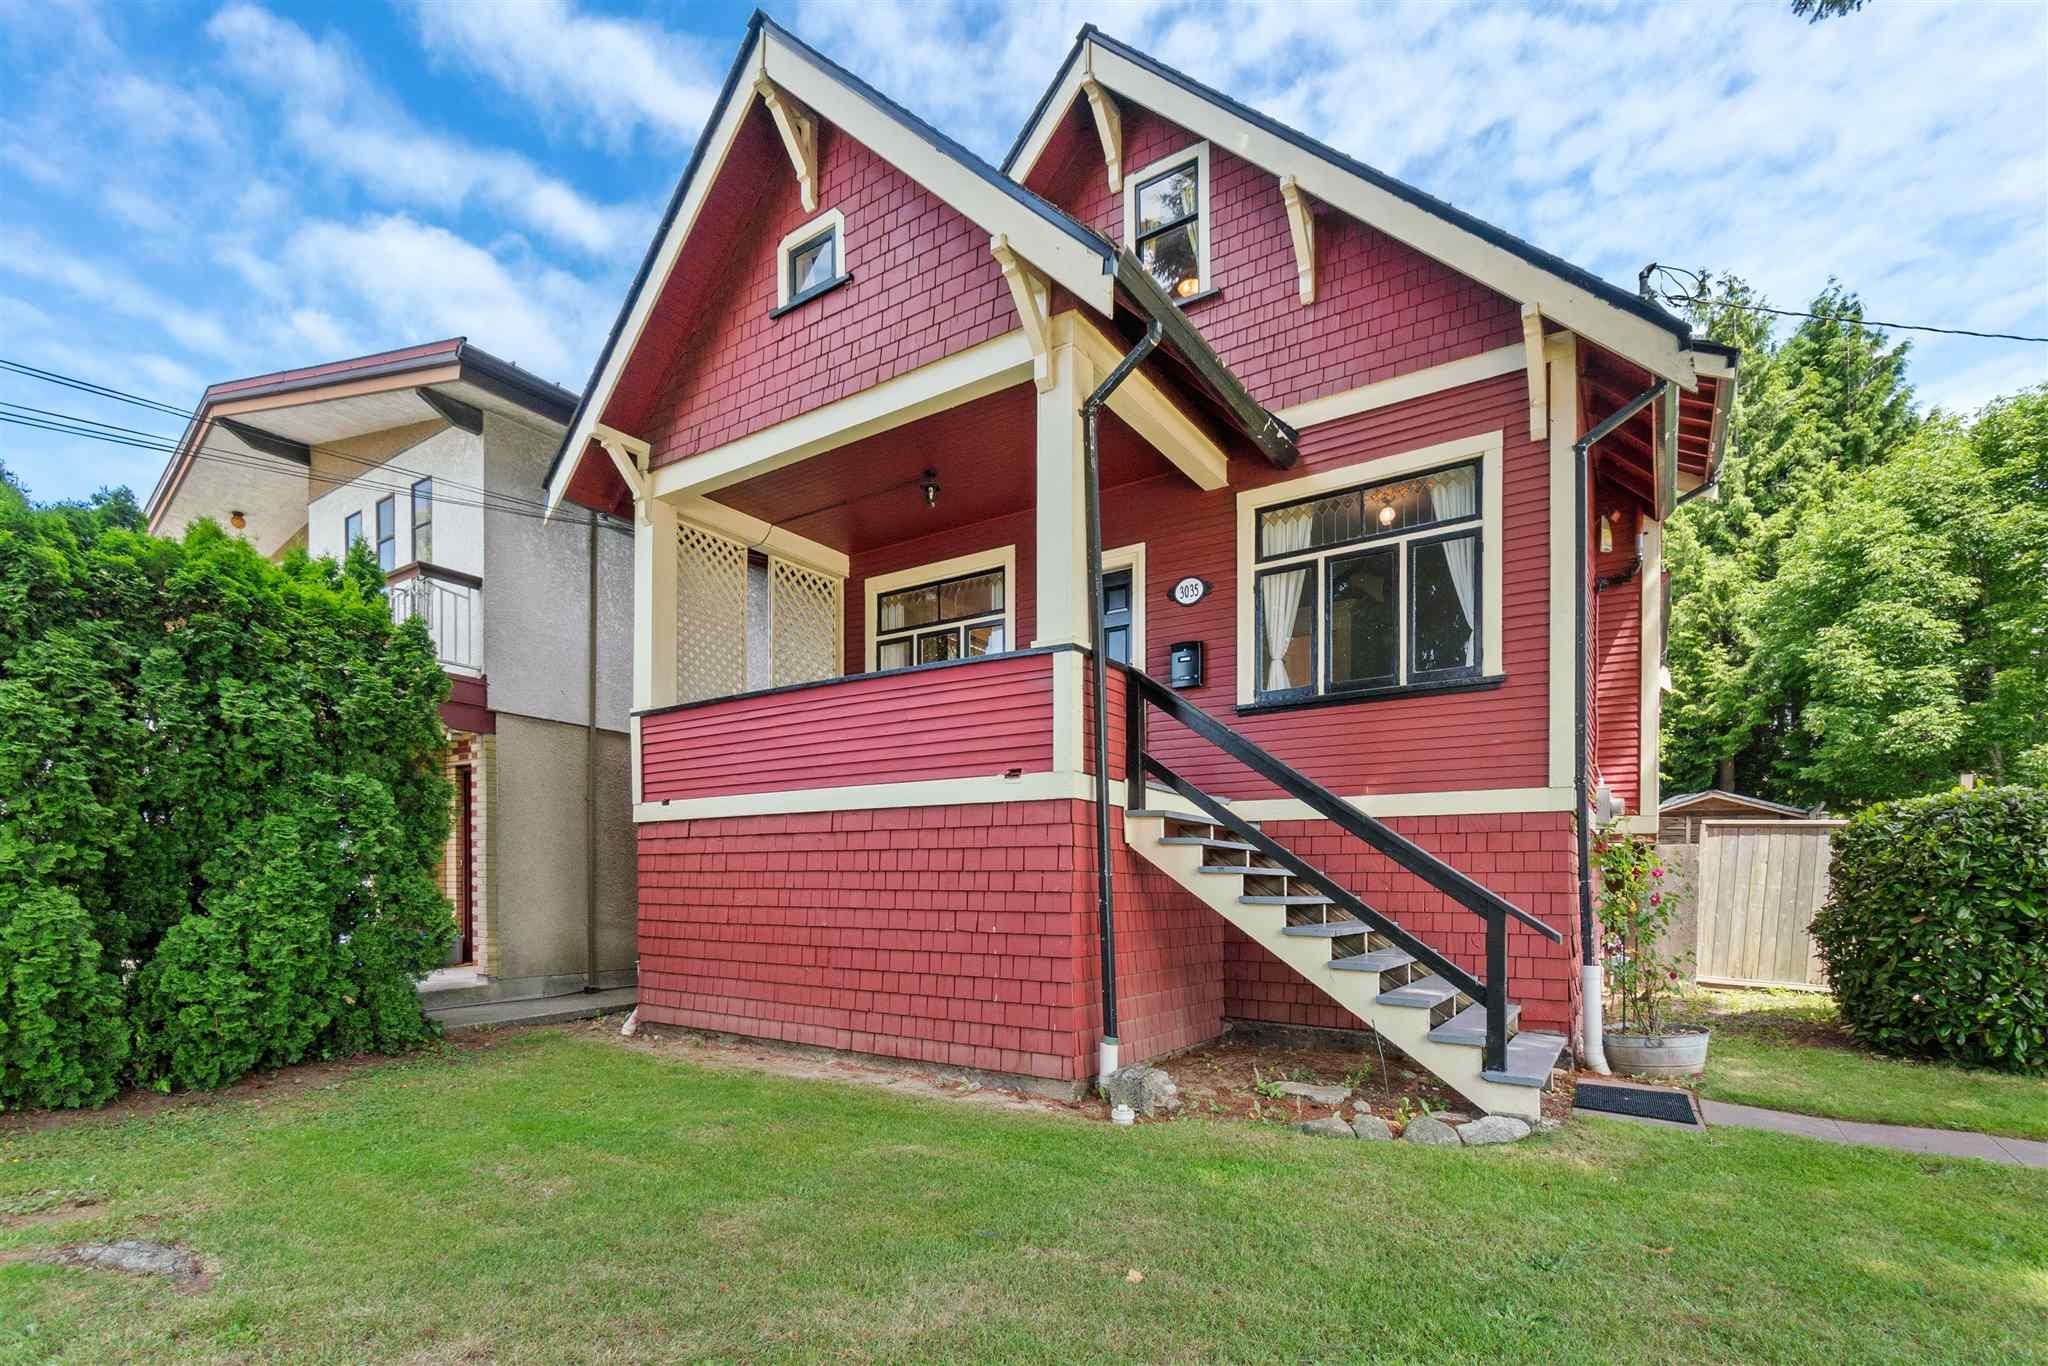 Main Photo: 3035 EUCLID AVENUE in Vancouver: Collingwood VE House for sale (Vancouver East)  : MLS®# R2595276